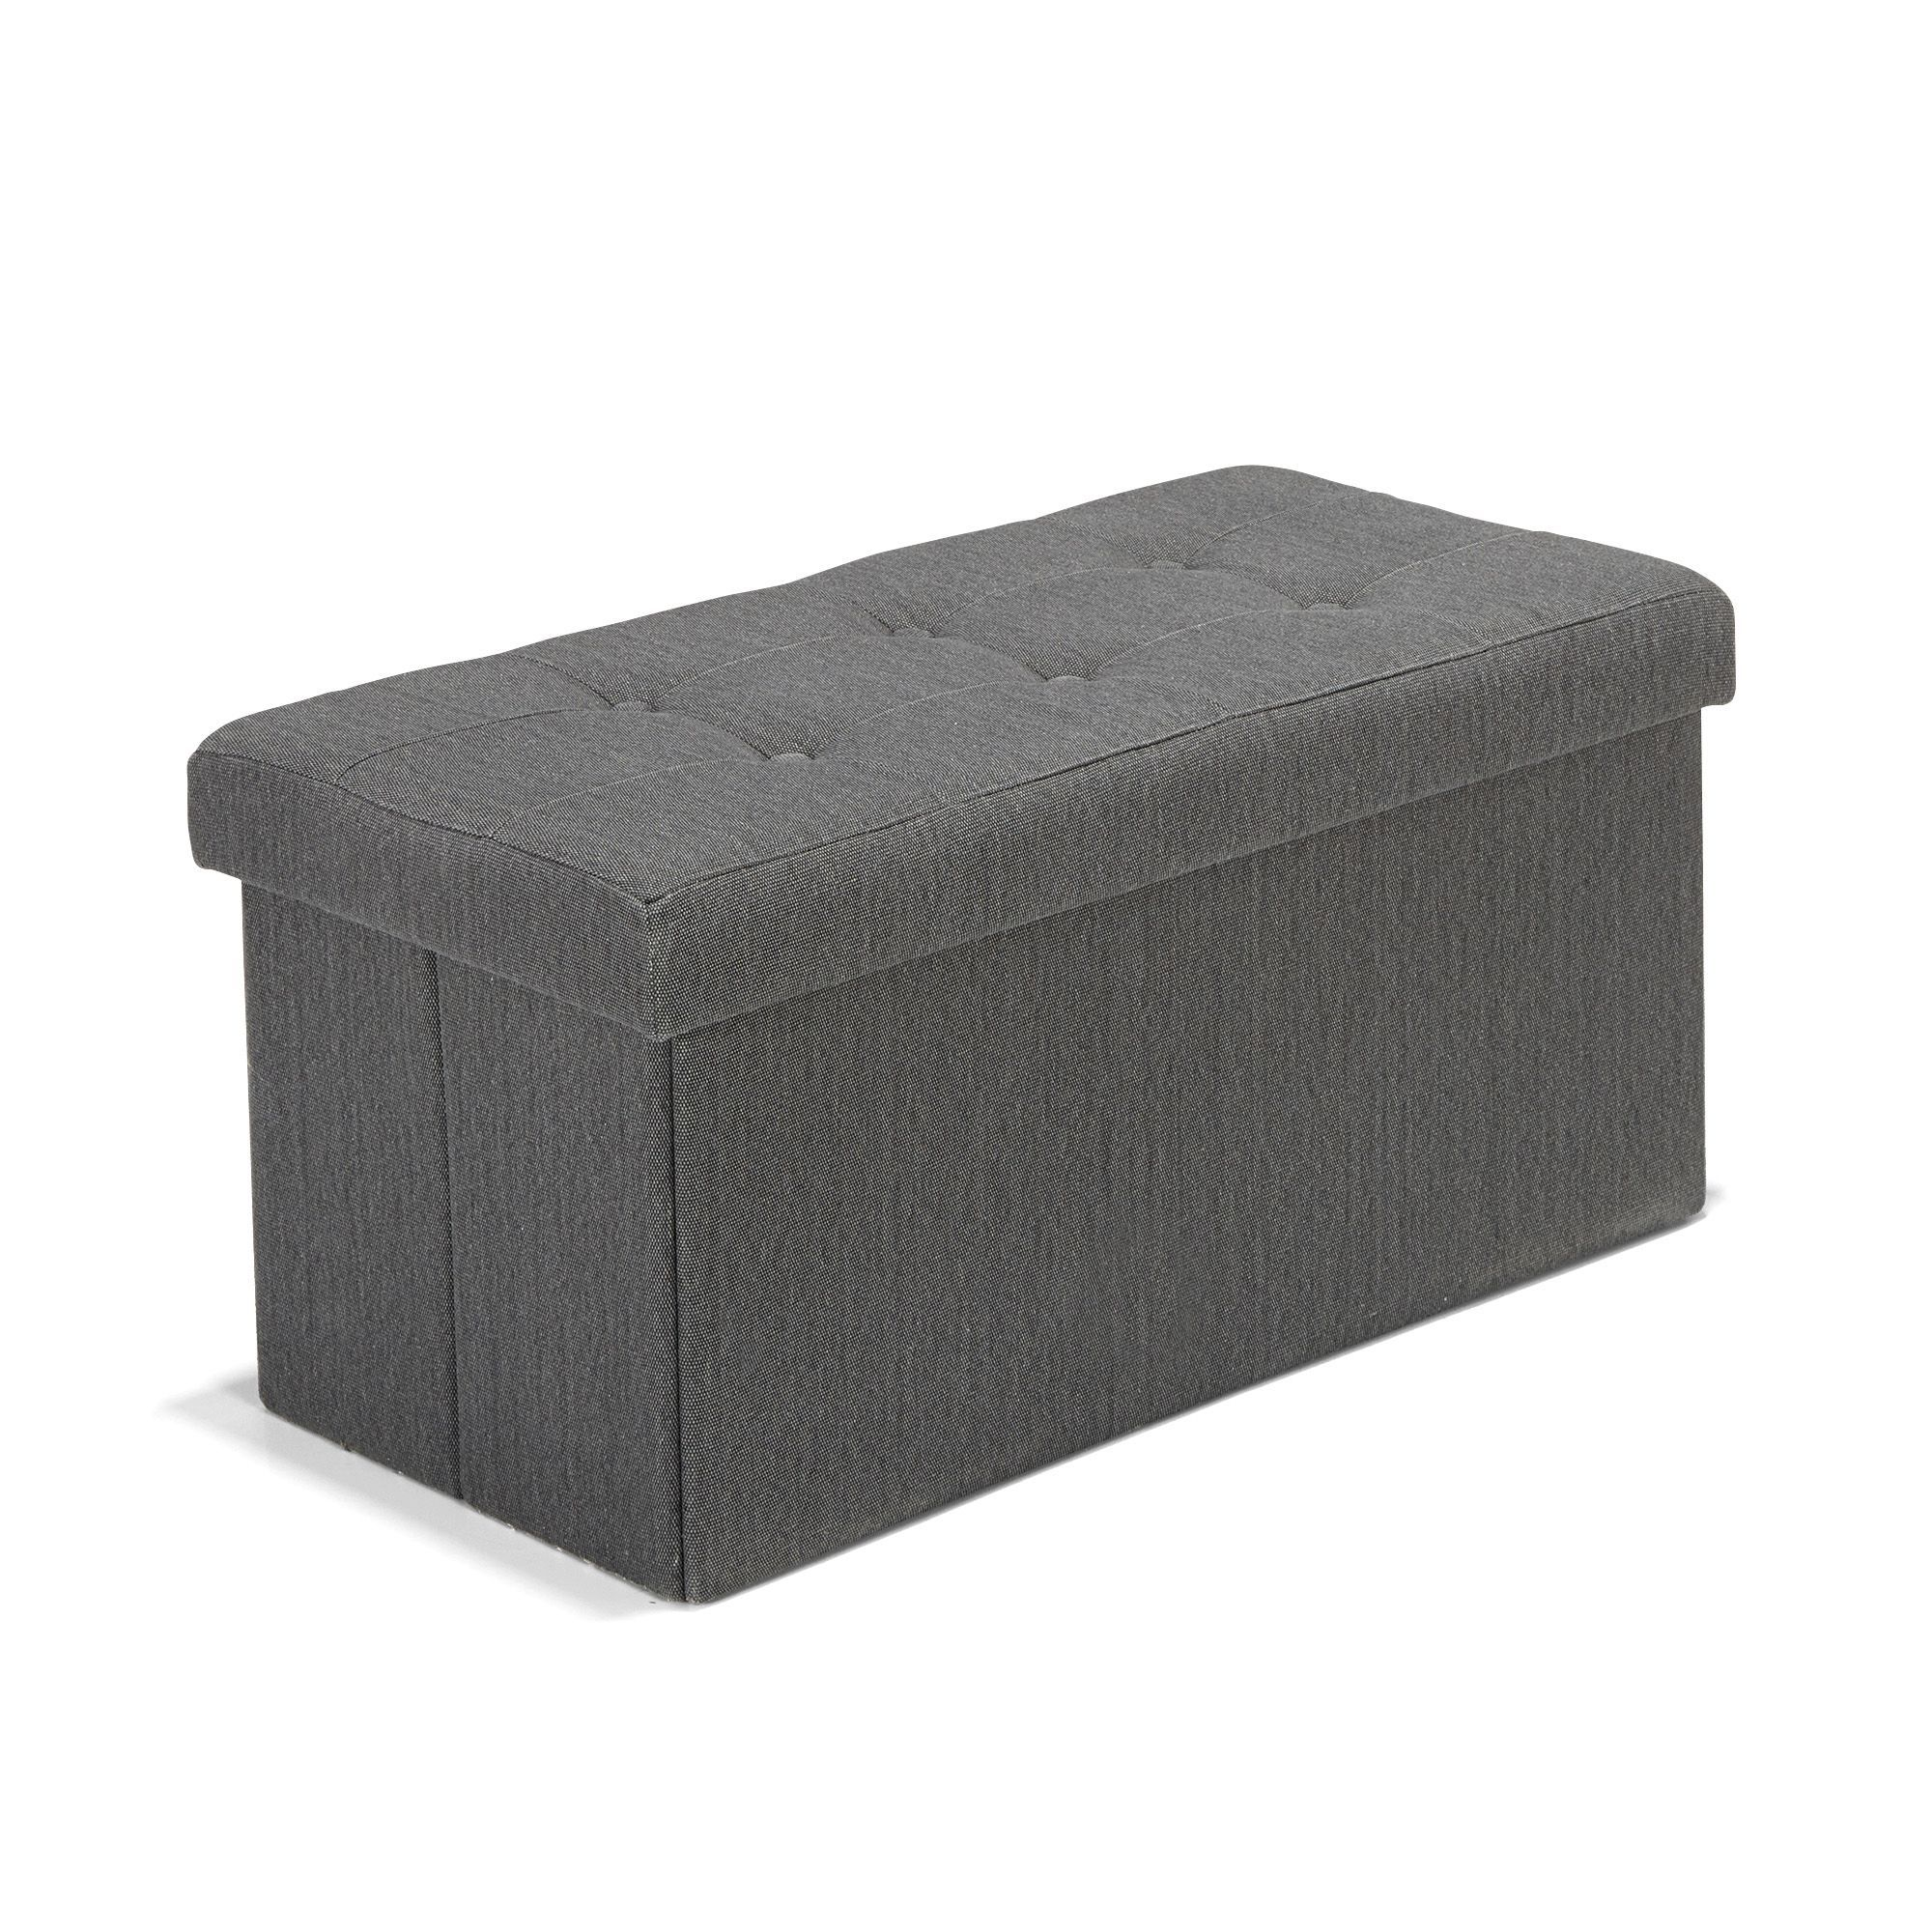 Pouf Coffre Banc Coloris Anthracite Pliable Oliver Poufs Fauteuils Poufs Salon Salle A Manger Par Piece Decoration Interie Meuble Deco Pouf Pouf Salon